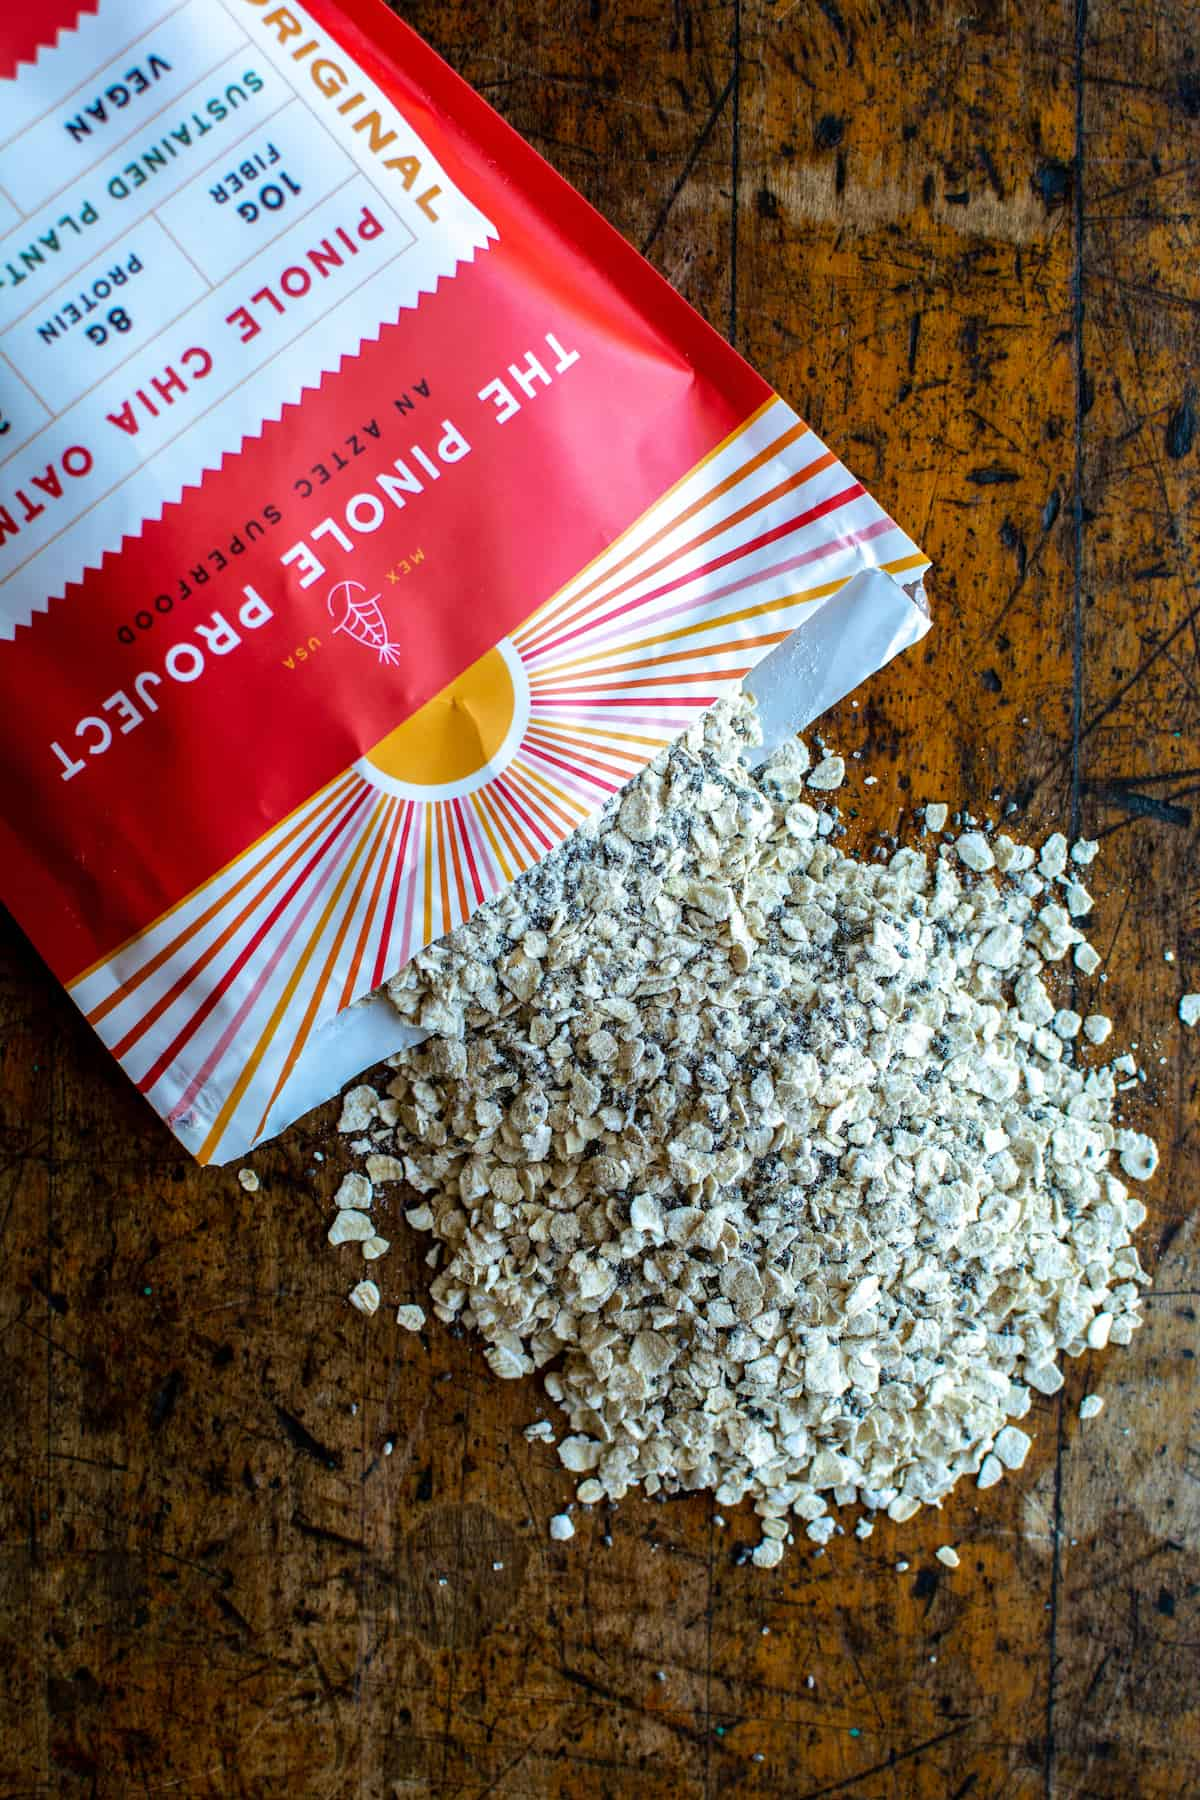 A red and yellow bag of Pinole Chia Oatmeal torn open with the dry pinole spilling out on to a wood table.